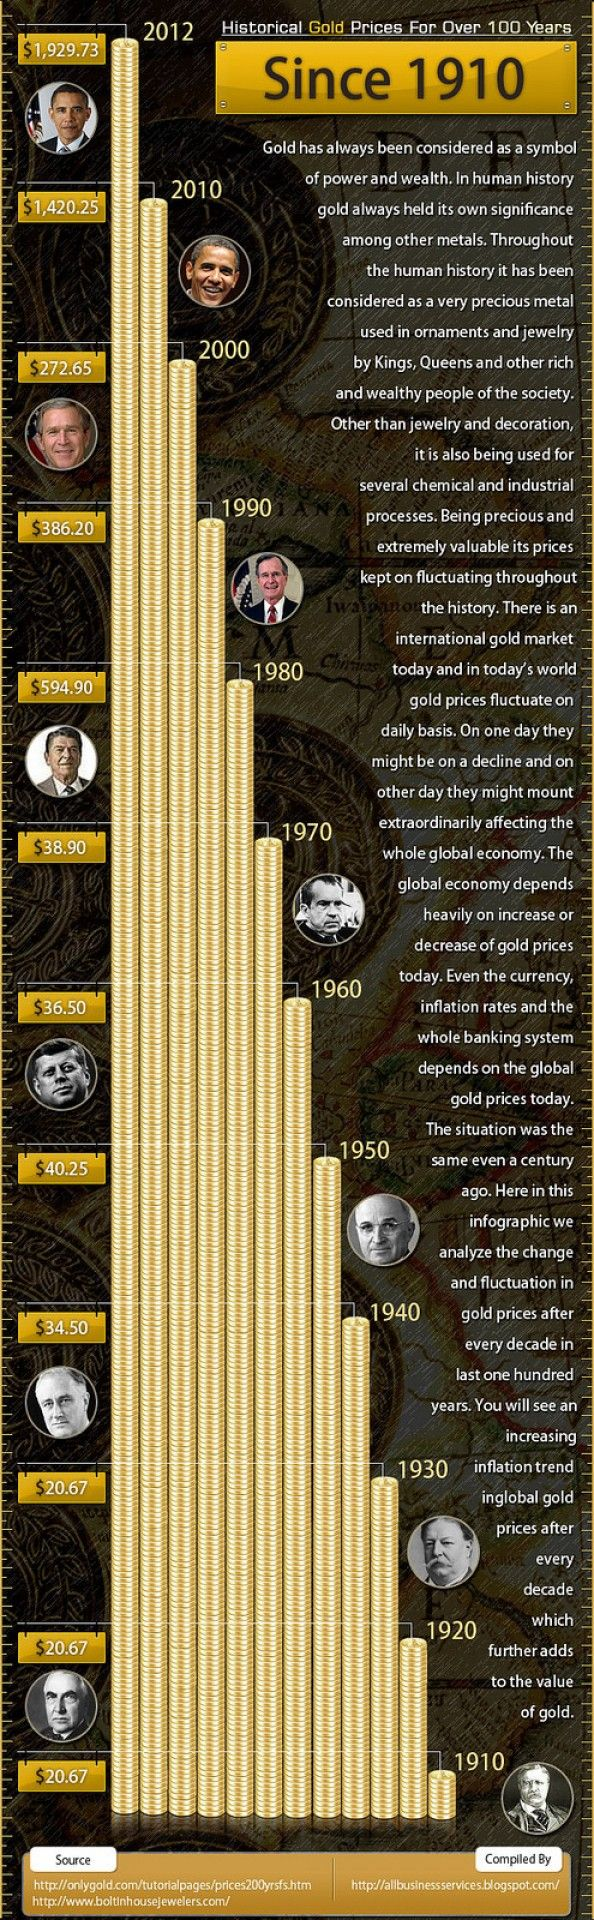 historical-gold-prices-for-over-100-years-since-1910-infographic_508a6eea99801_w594.jpg (594×1920)